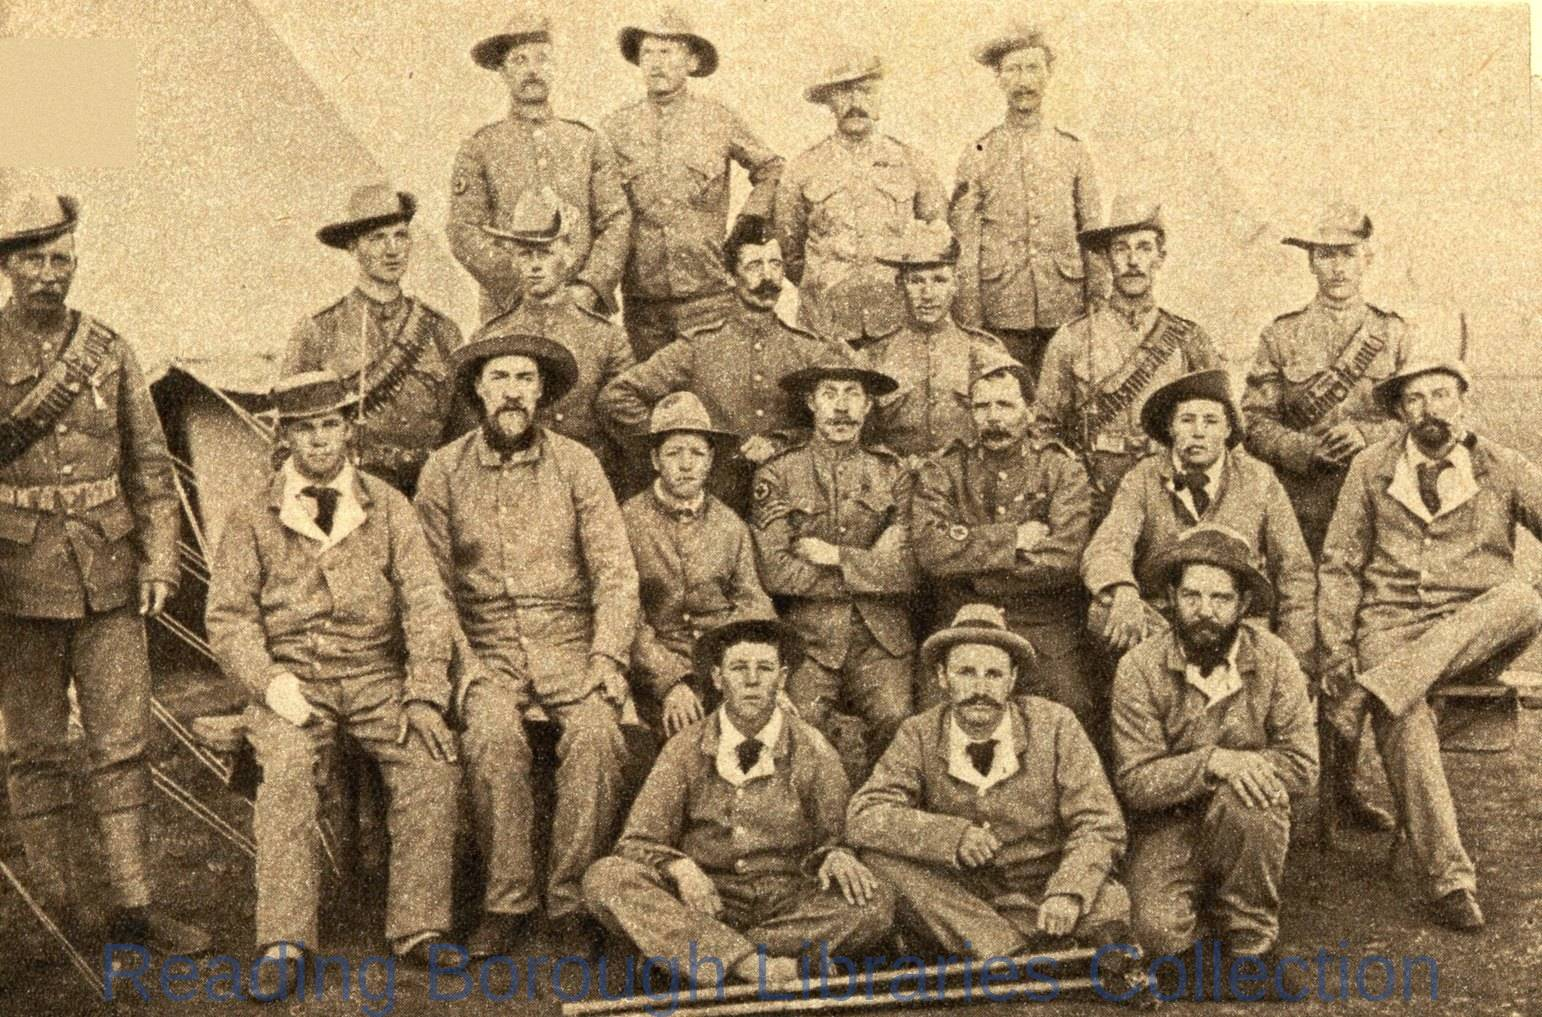 Wounded men of the Royal Berkshire (Mounted) Regiment in South Africa, 1900. 1900-1909.